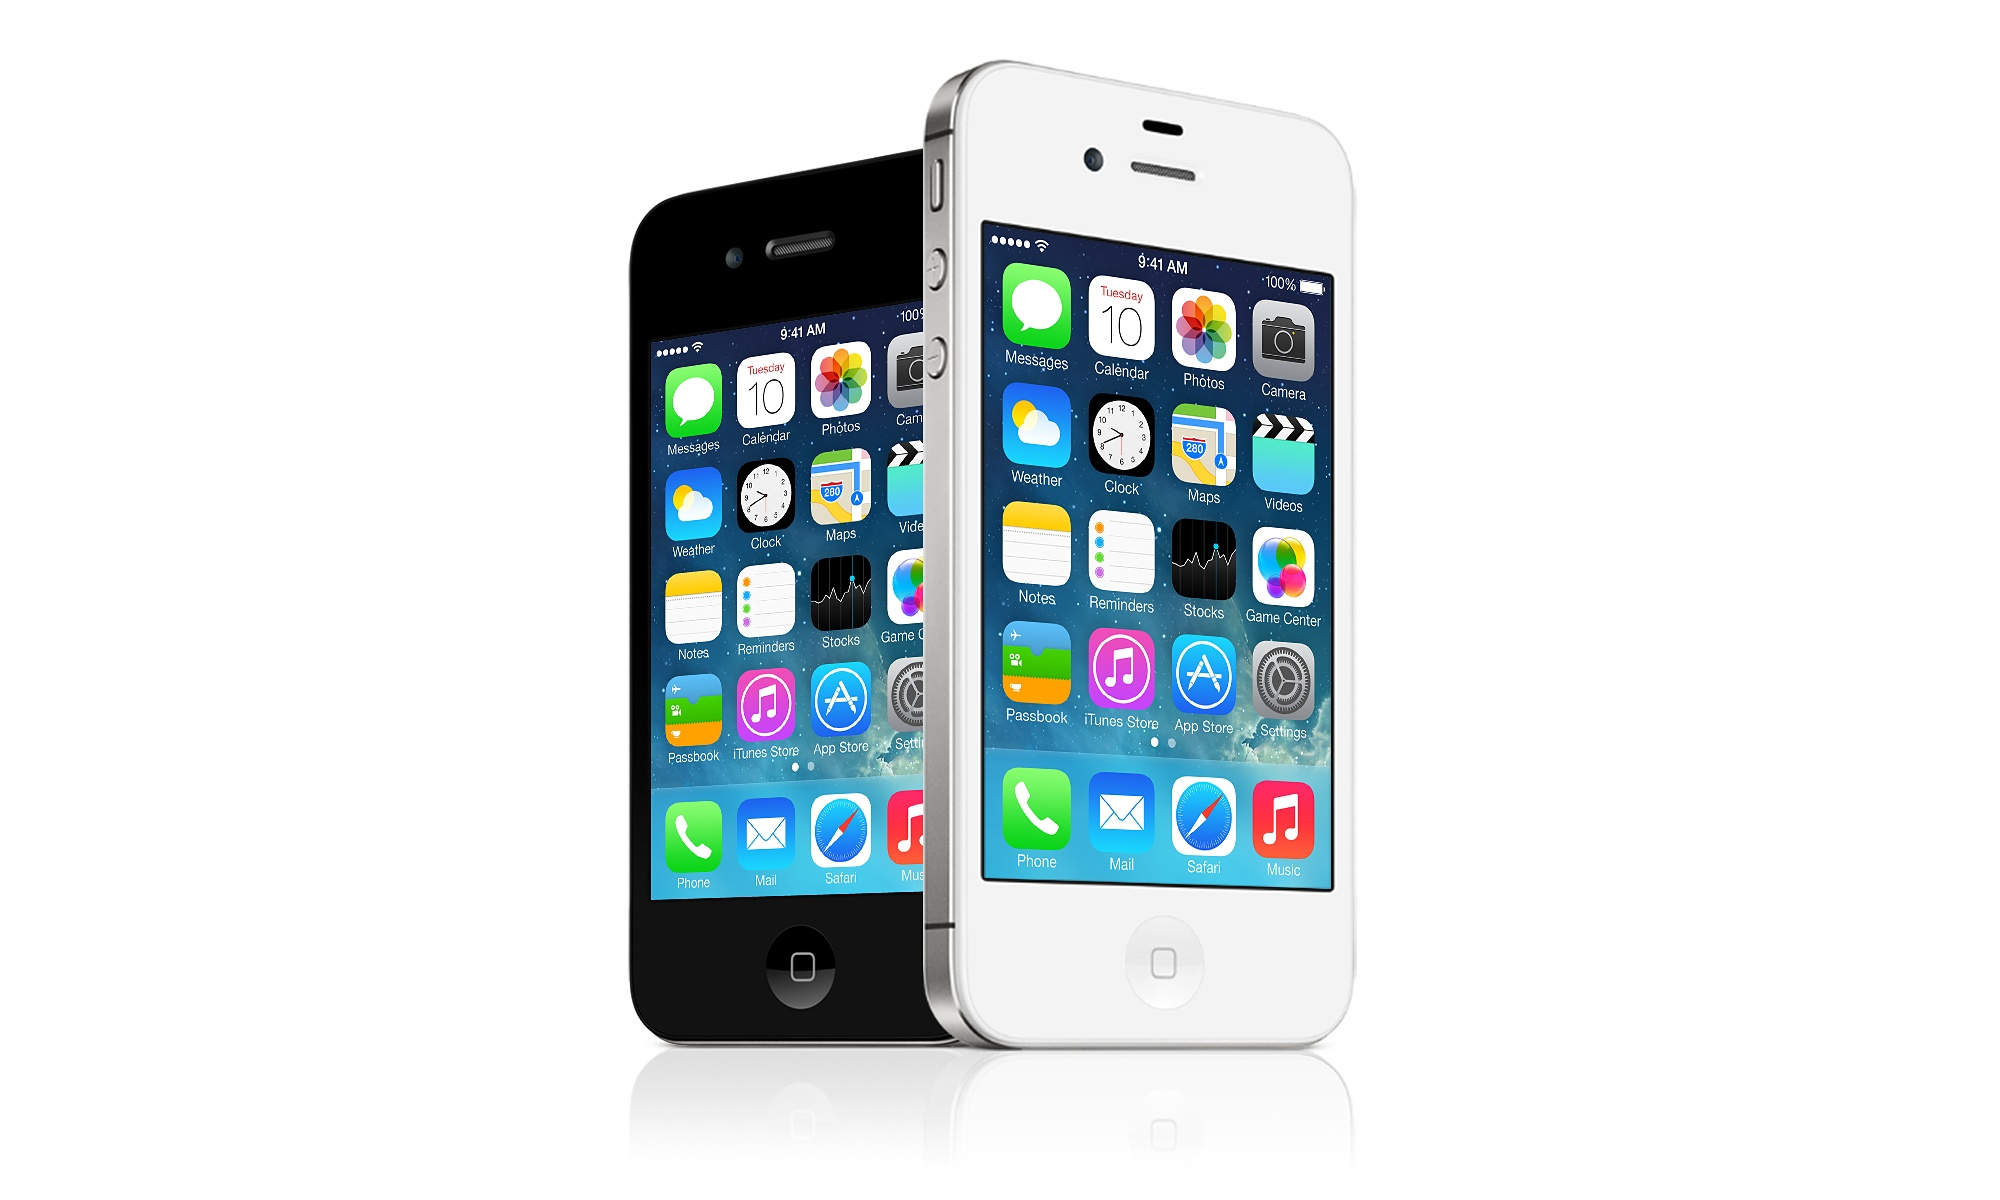 iPhone 4s was launched in October 2011